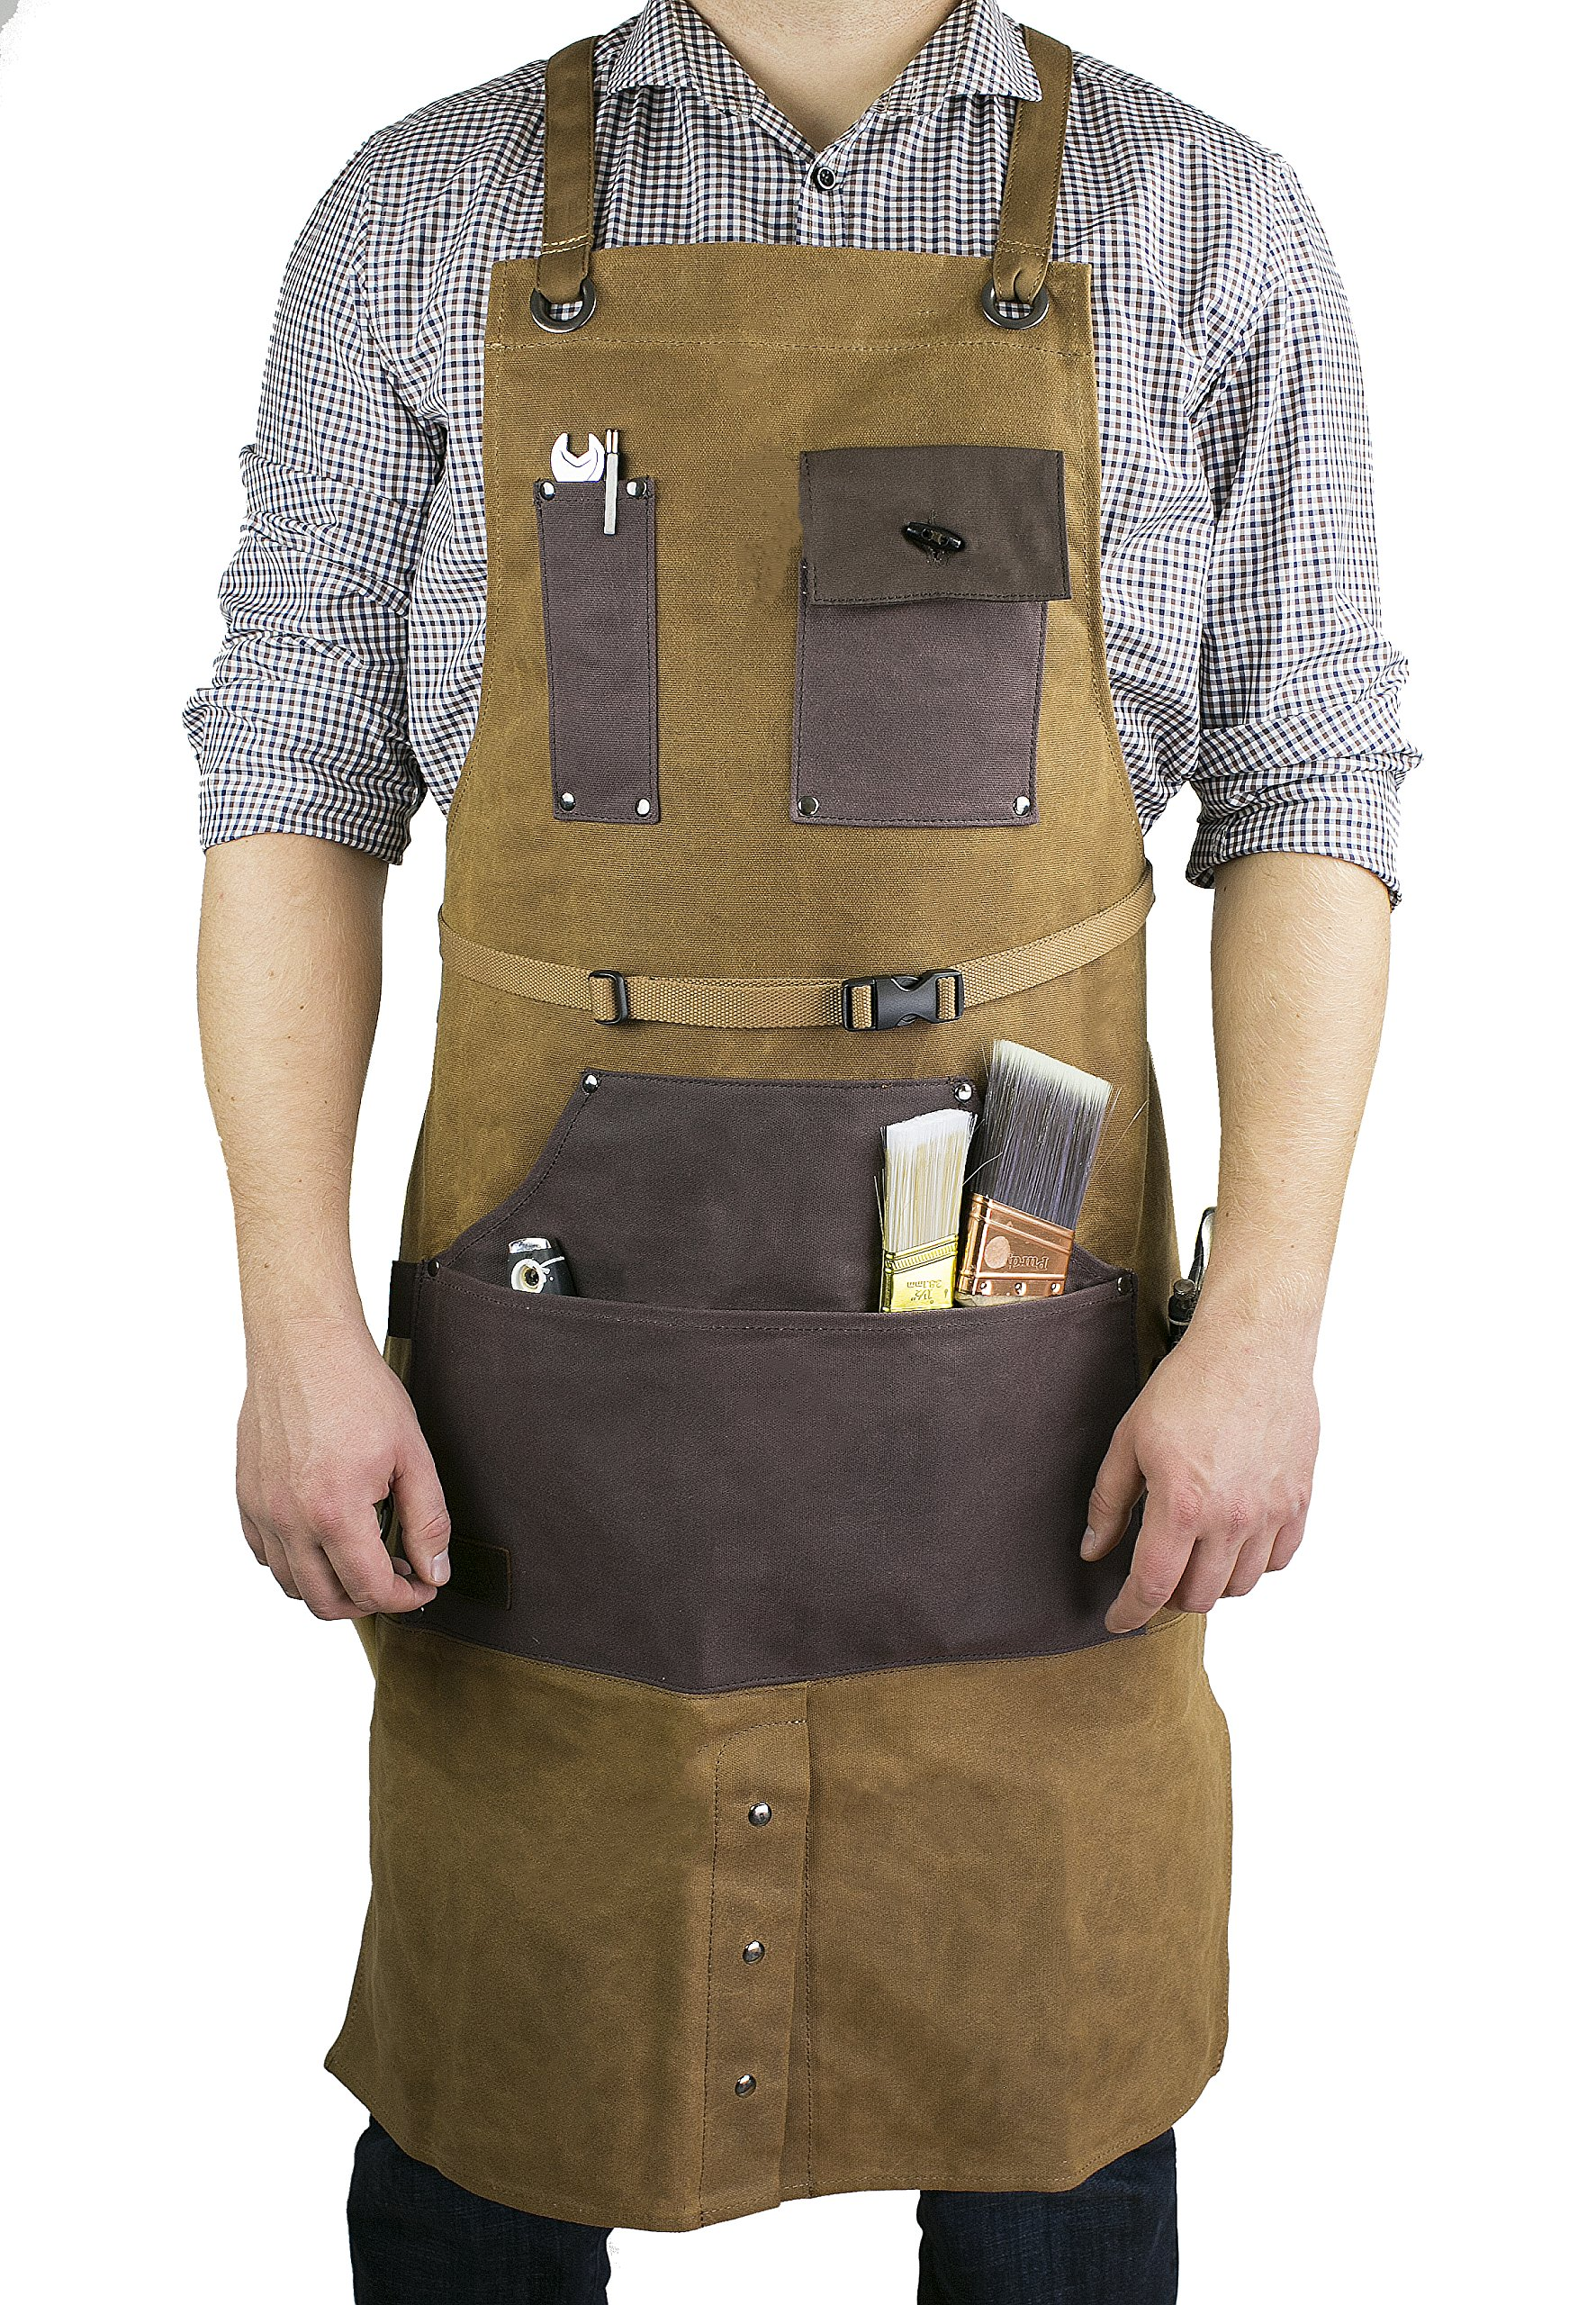 Apwax - Adjustable Heavy Duty Waxed Canvas Tool Apron for Men & Women – Ideal as Utility, Carpenter, Artisan, Craftsman, Gardening Tool Apron, etc. – Multiple Pockets – Comfortable Design